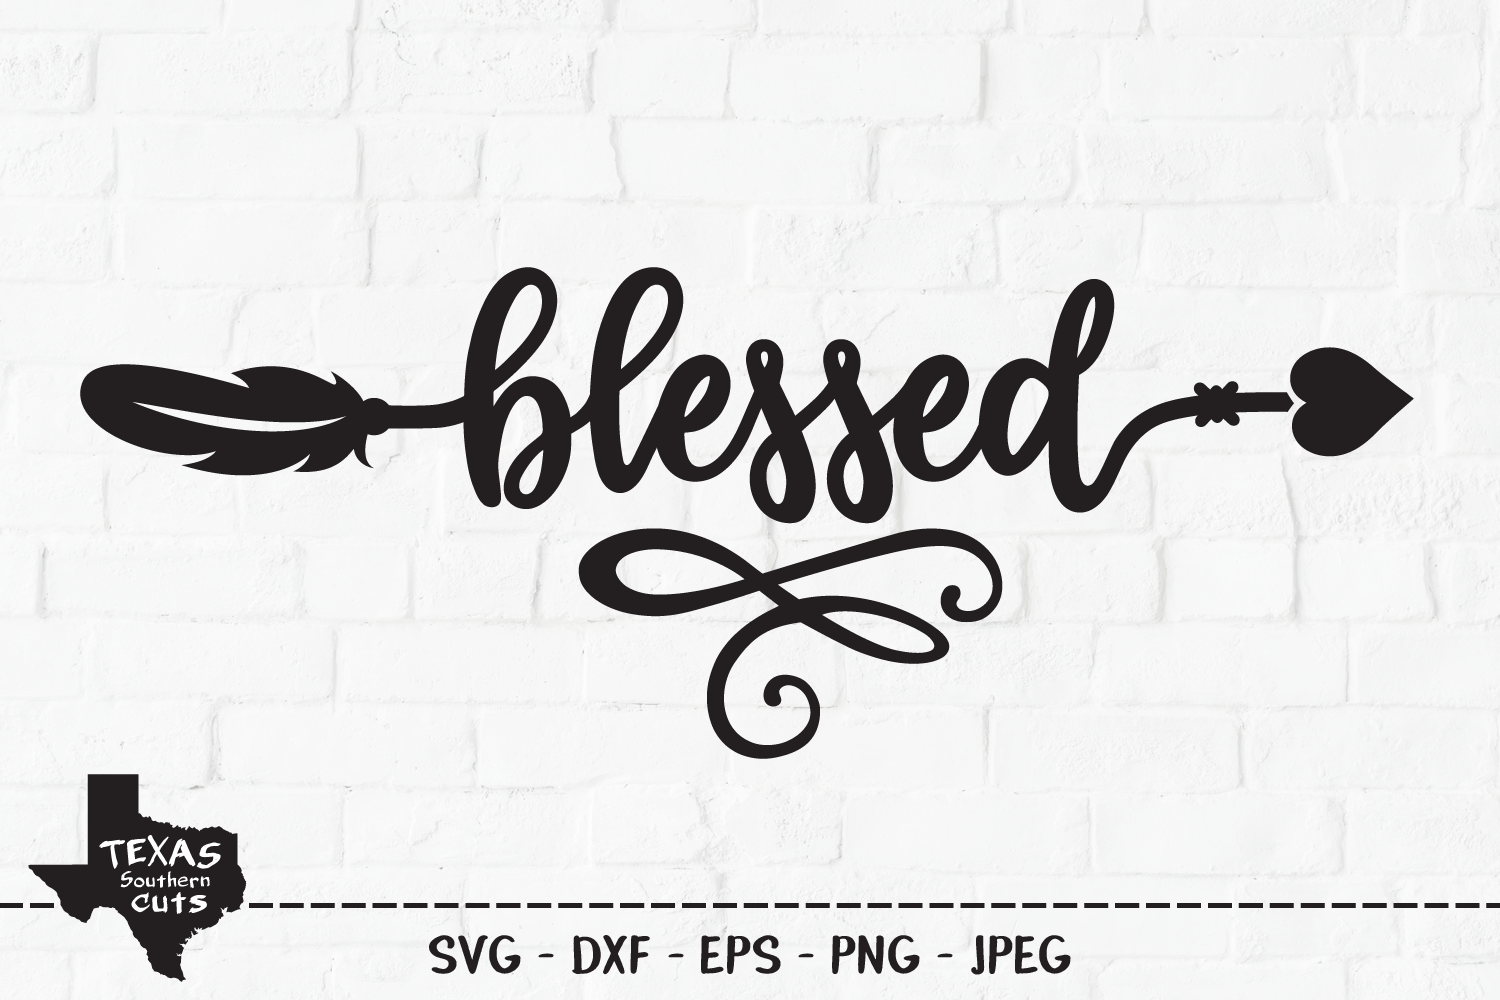 Blessed SVG, Cut File, Thanksgiving Shirt Design, Arrow example image 1